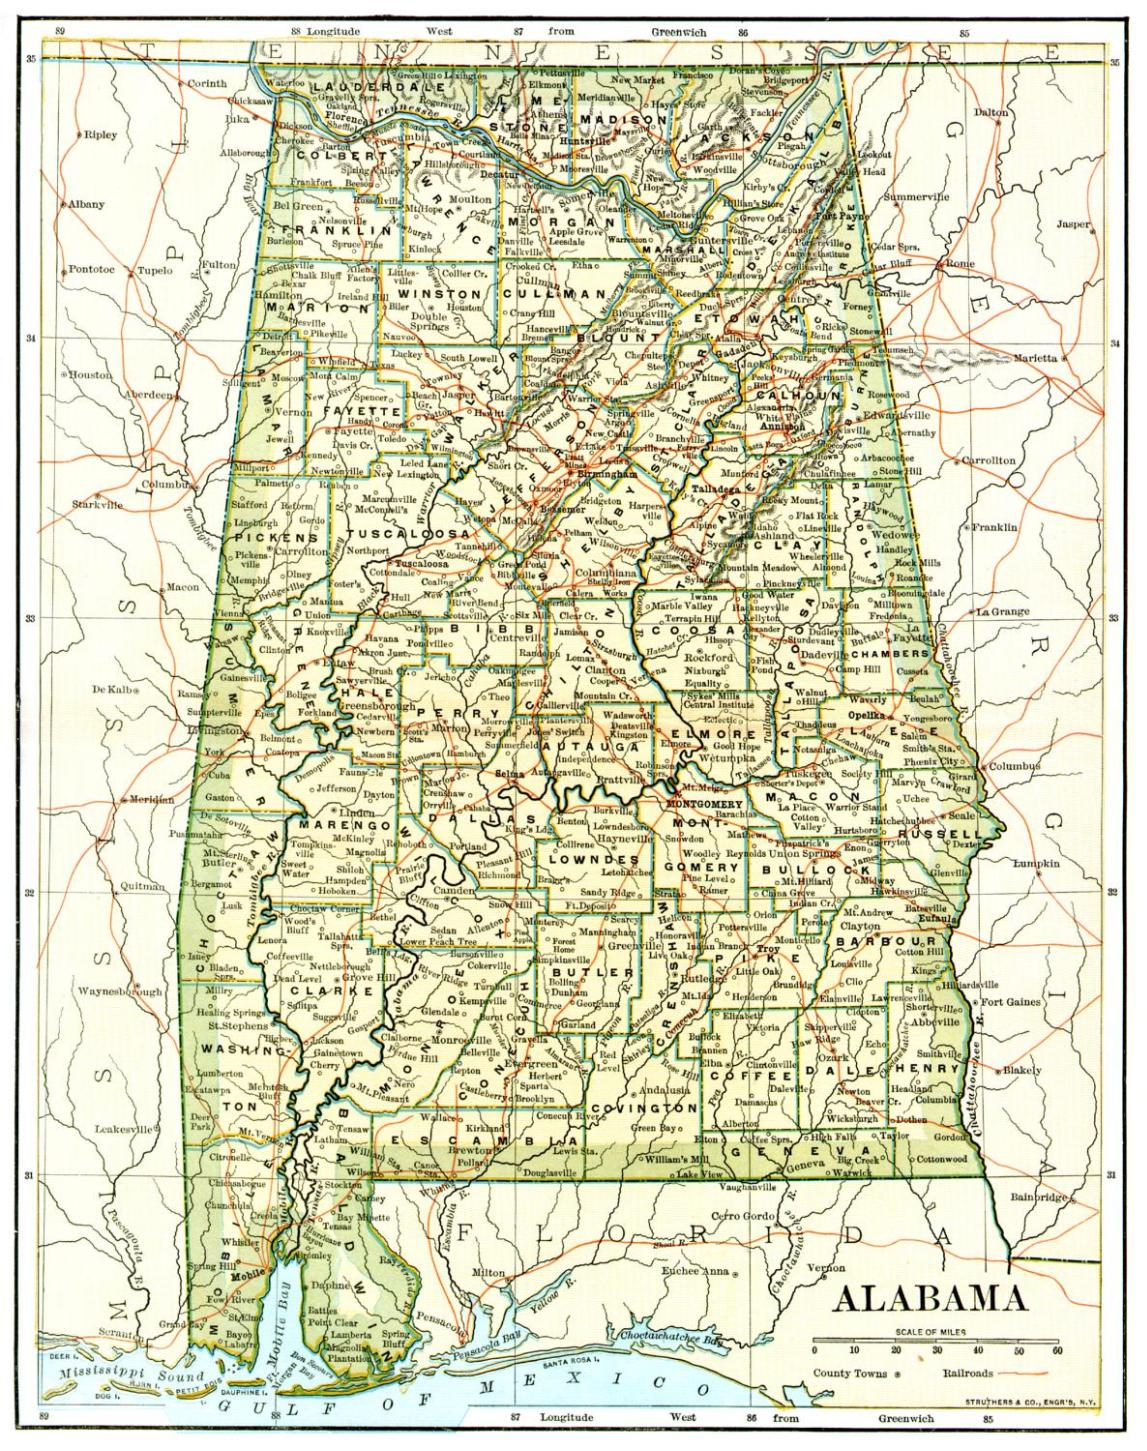 Alabama Maps Alabama Digital Map Library Table Of Contents - Maps of alabama